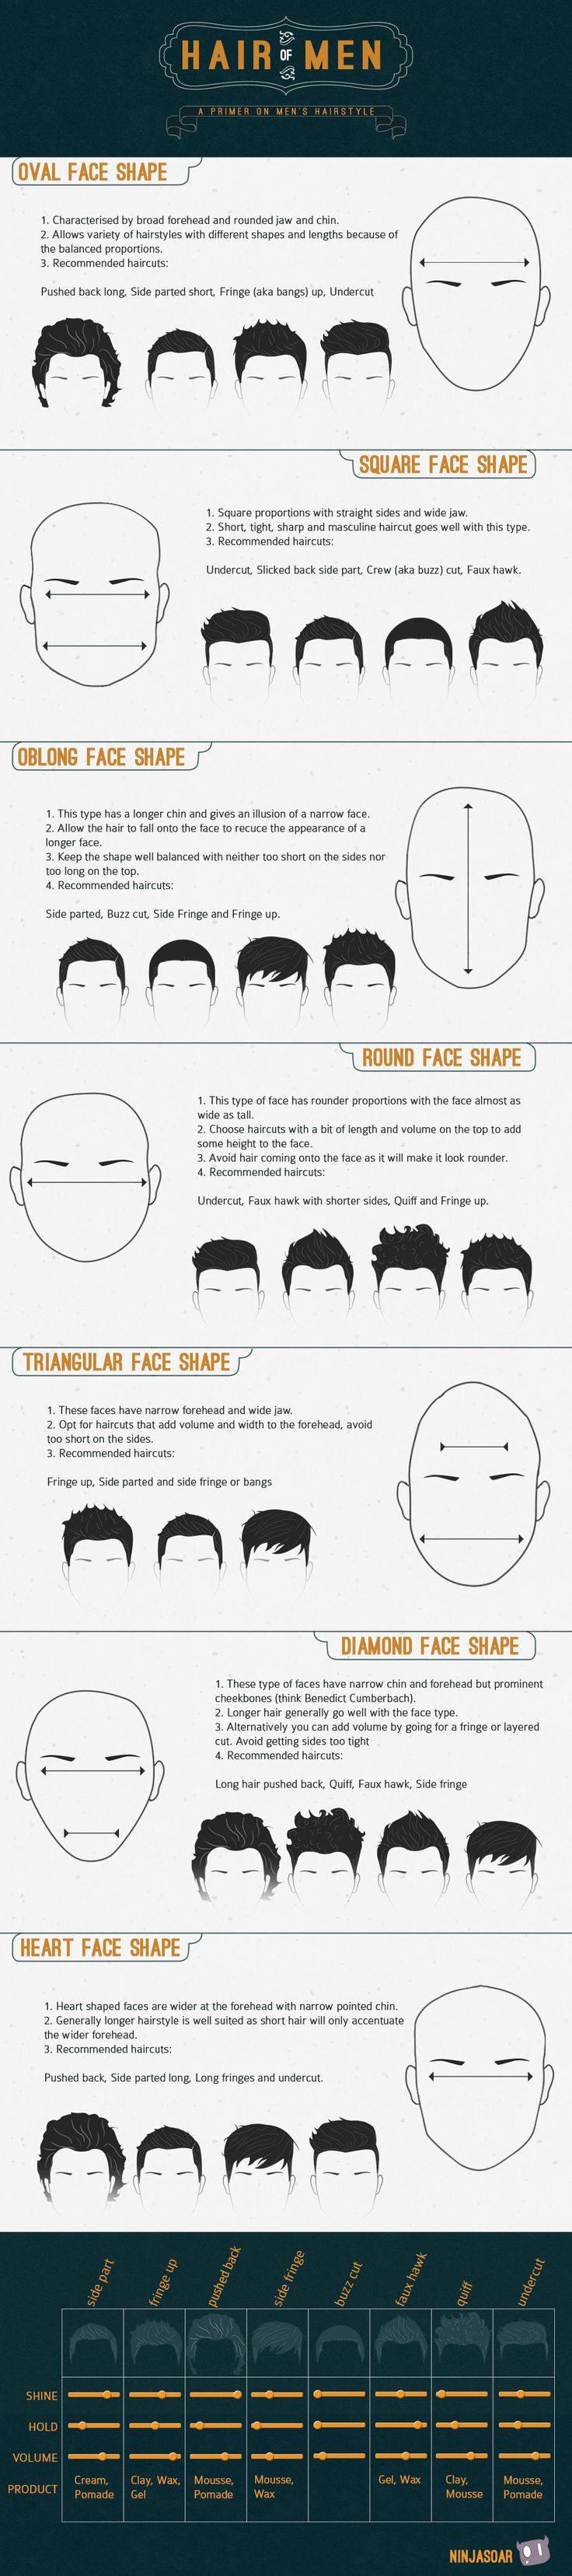 A Guide Finding The Right Haircut | ShortList Magazine